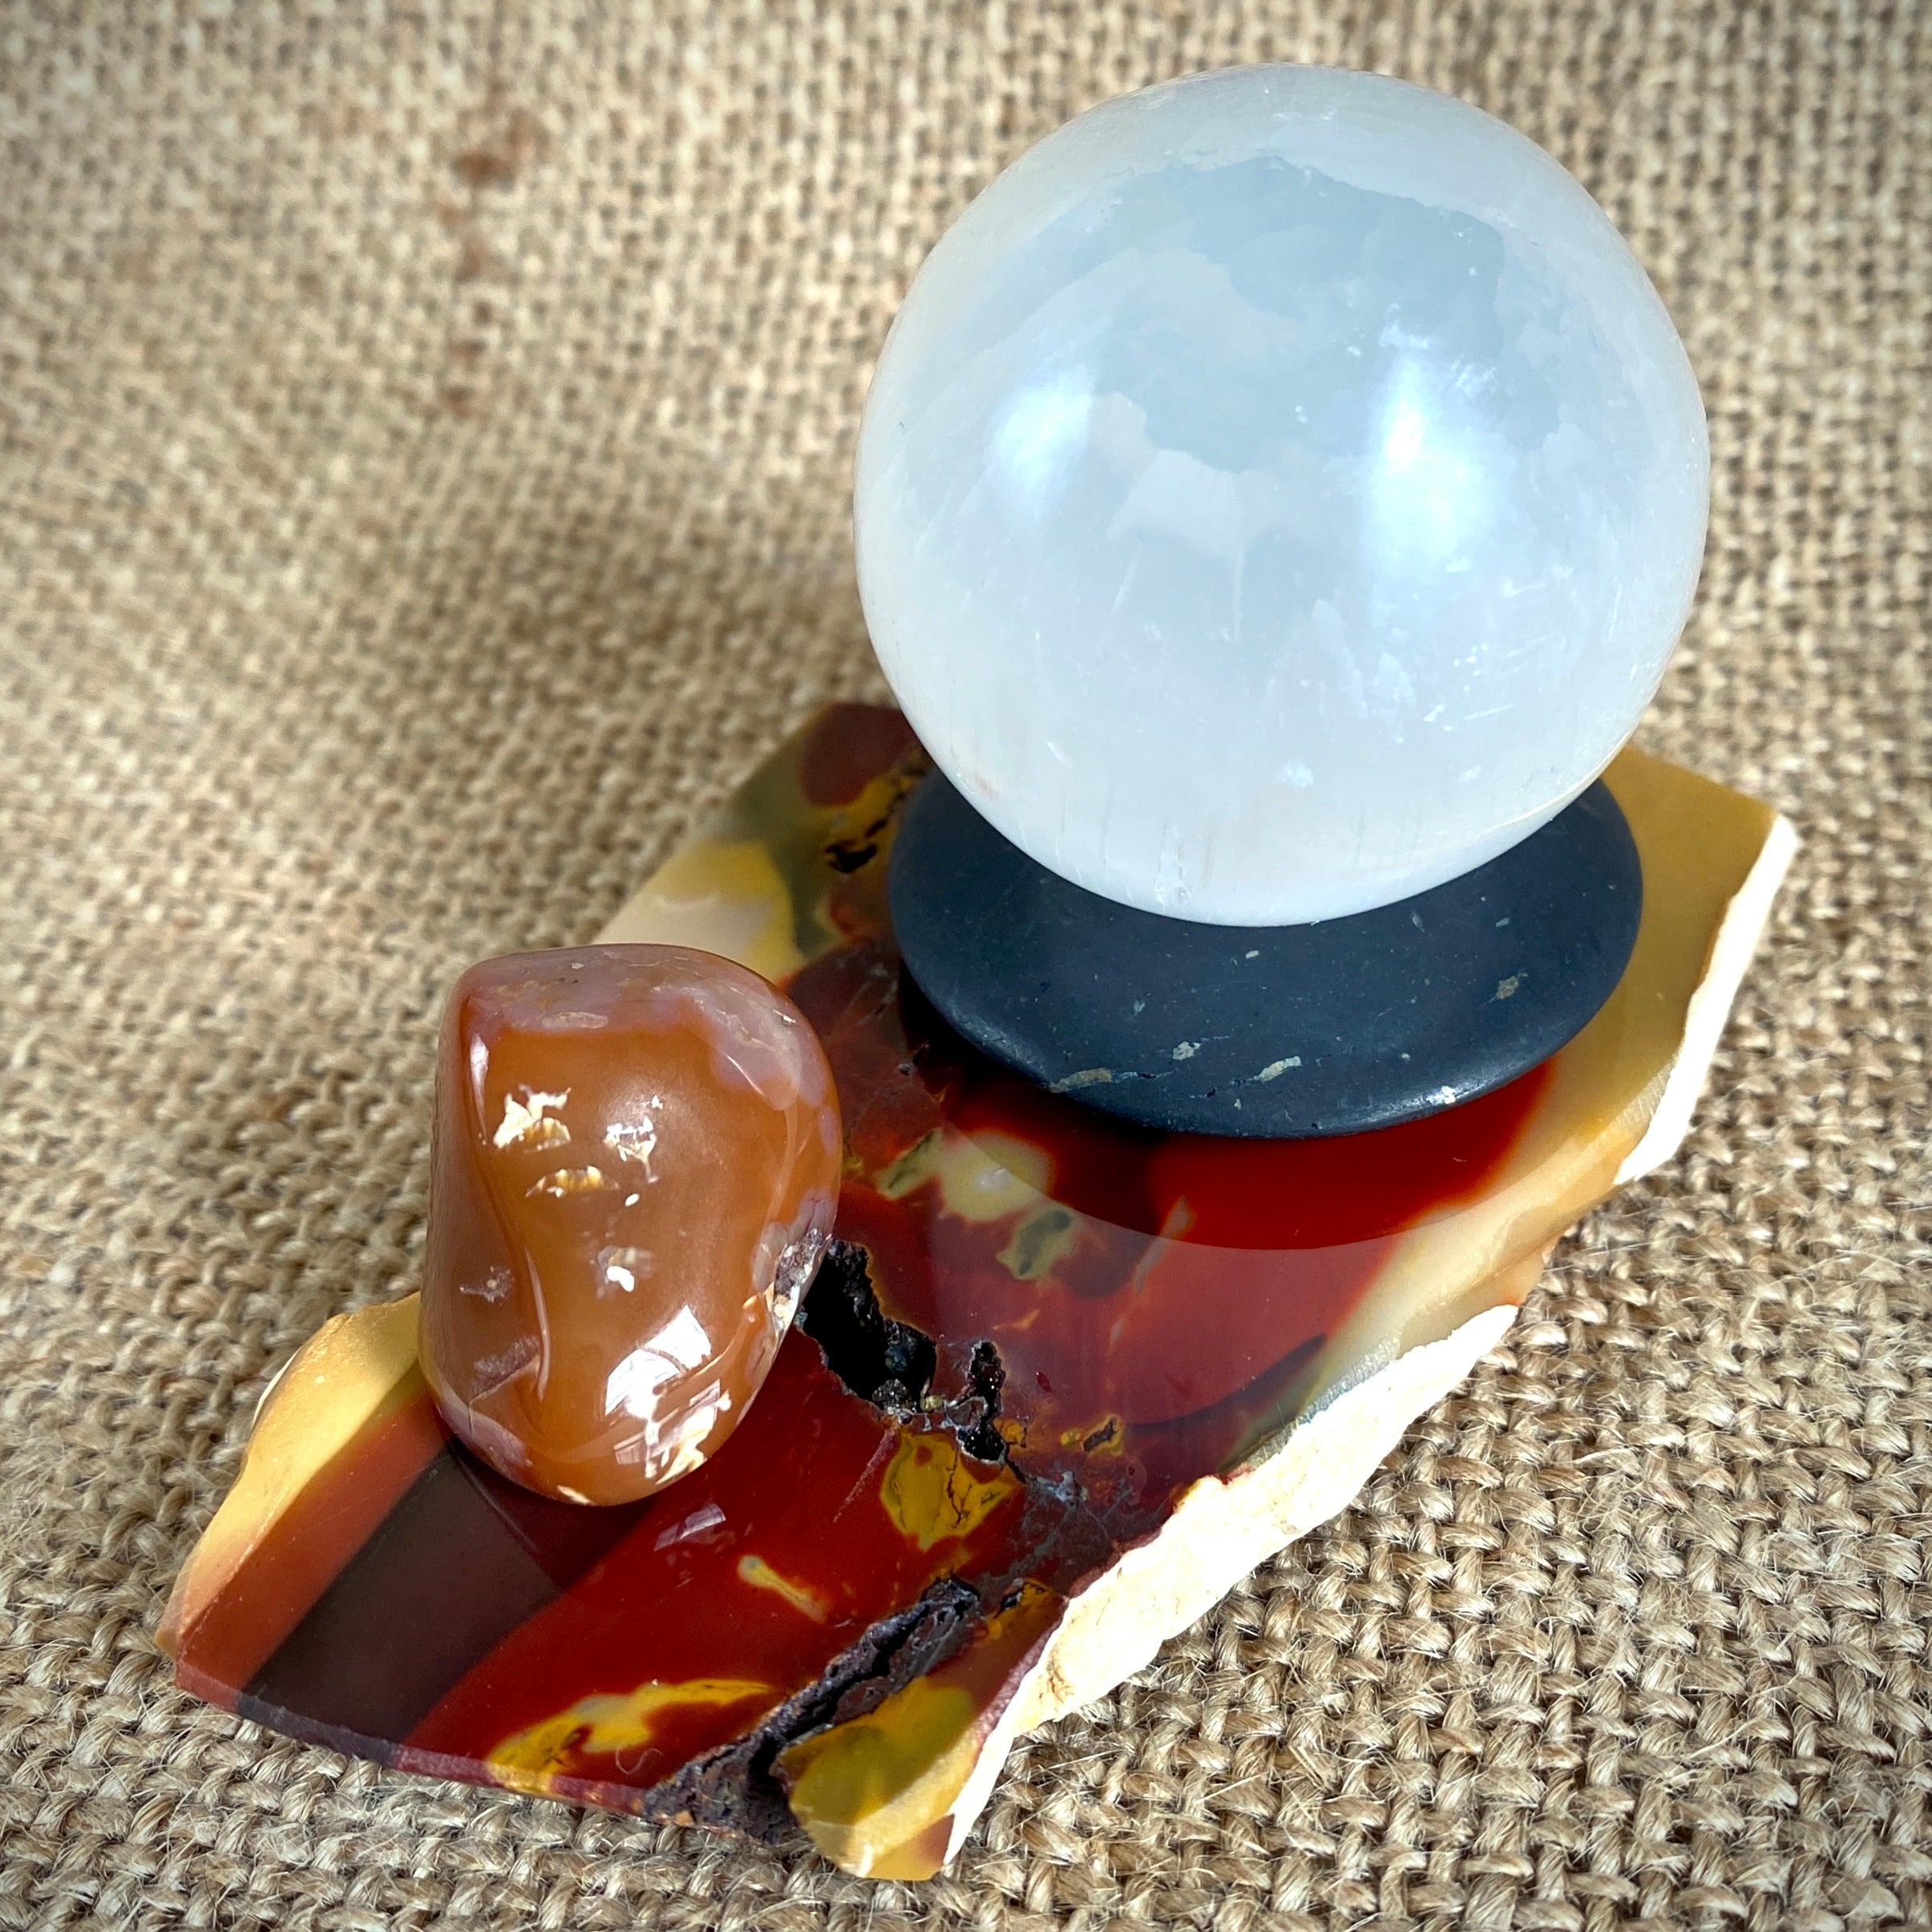 Selenite Sphere & Shungite Donut on Gorgeous Mookaite Slab - Shungite Queen